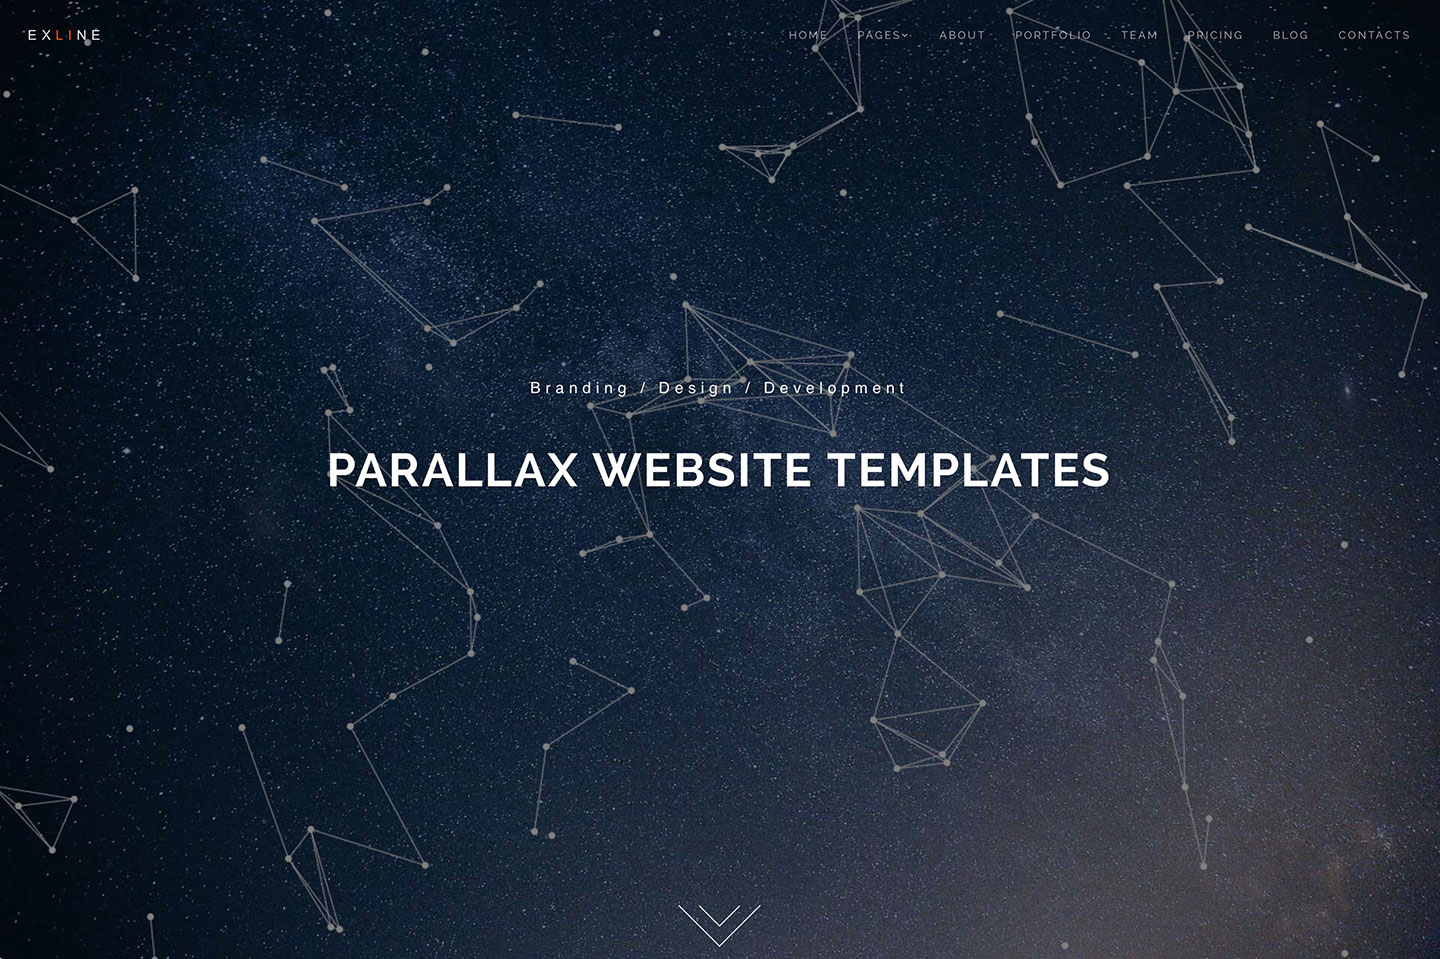 html5 css3 parallax website templates with smooth scrolling 2016